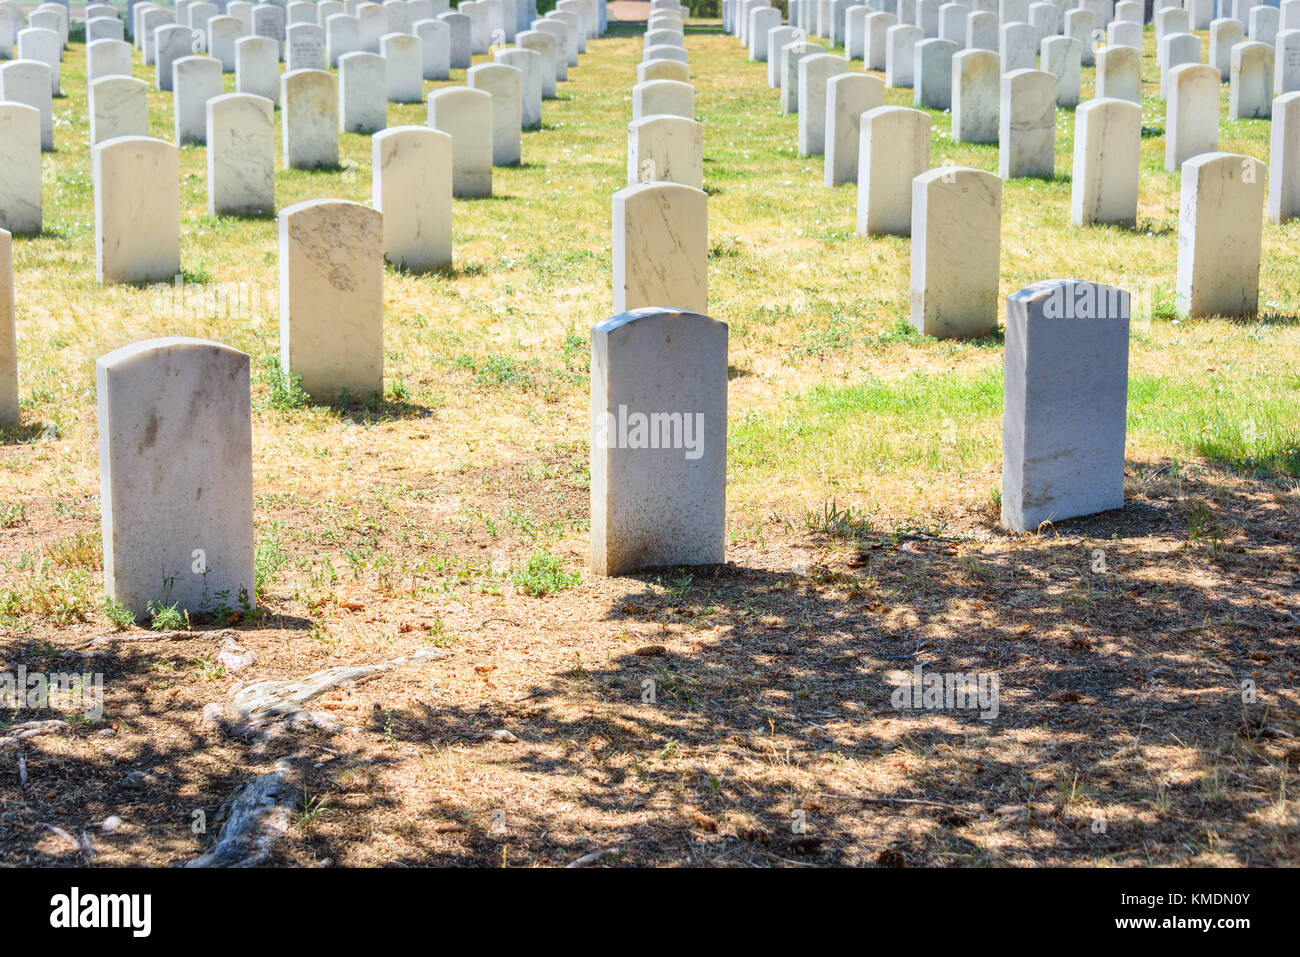 Custer National Cemetery at Little Bighorn Battlefield National Monument, Montana, USA. Stock Photo